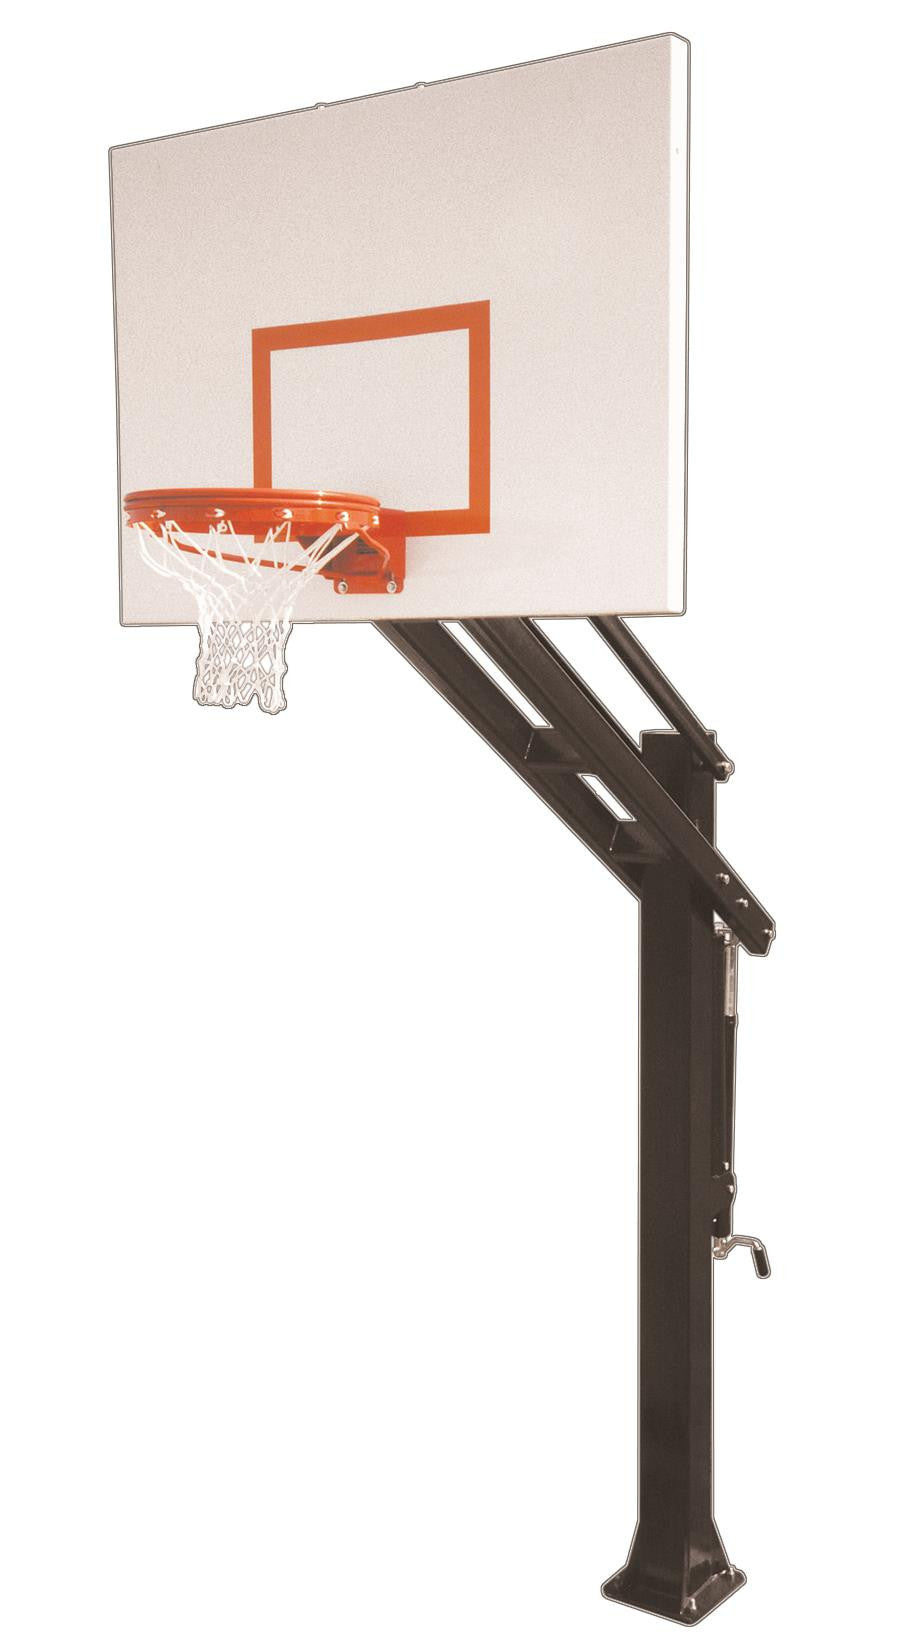 First Team Titan Impervia In Ground Outdoor Adjustable Basketball Hoop 60 inch Aluminum